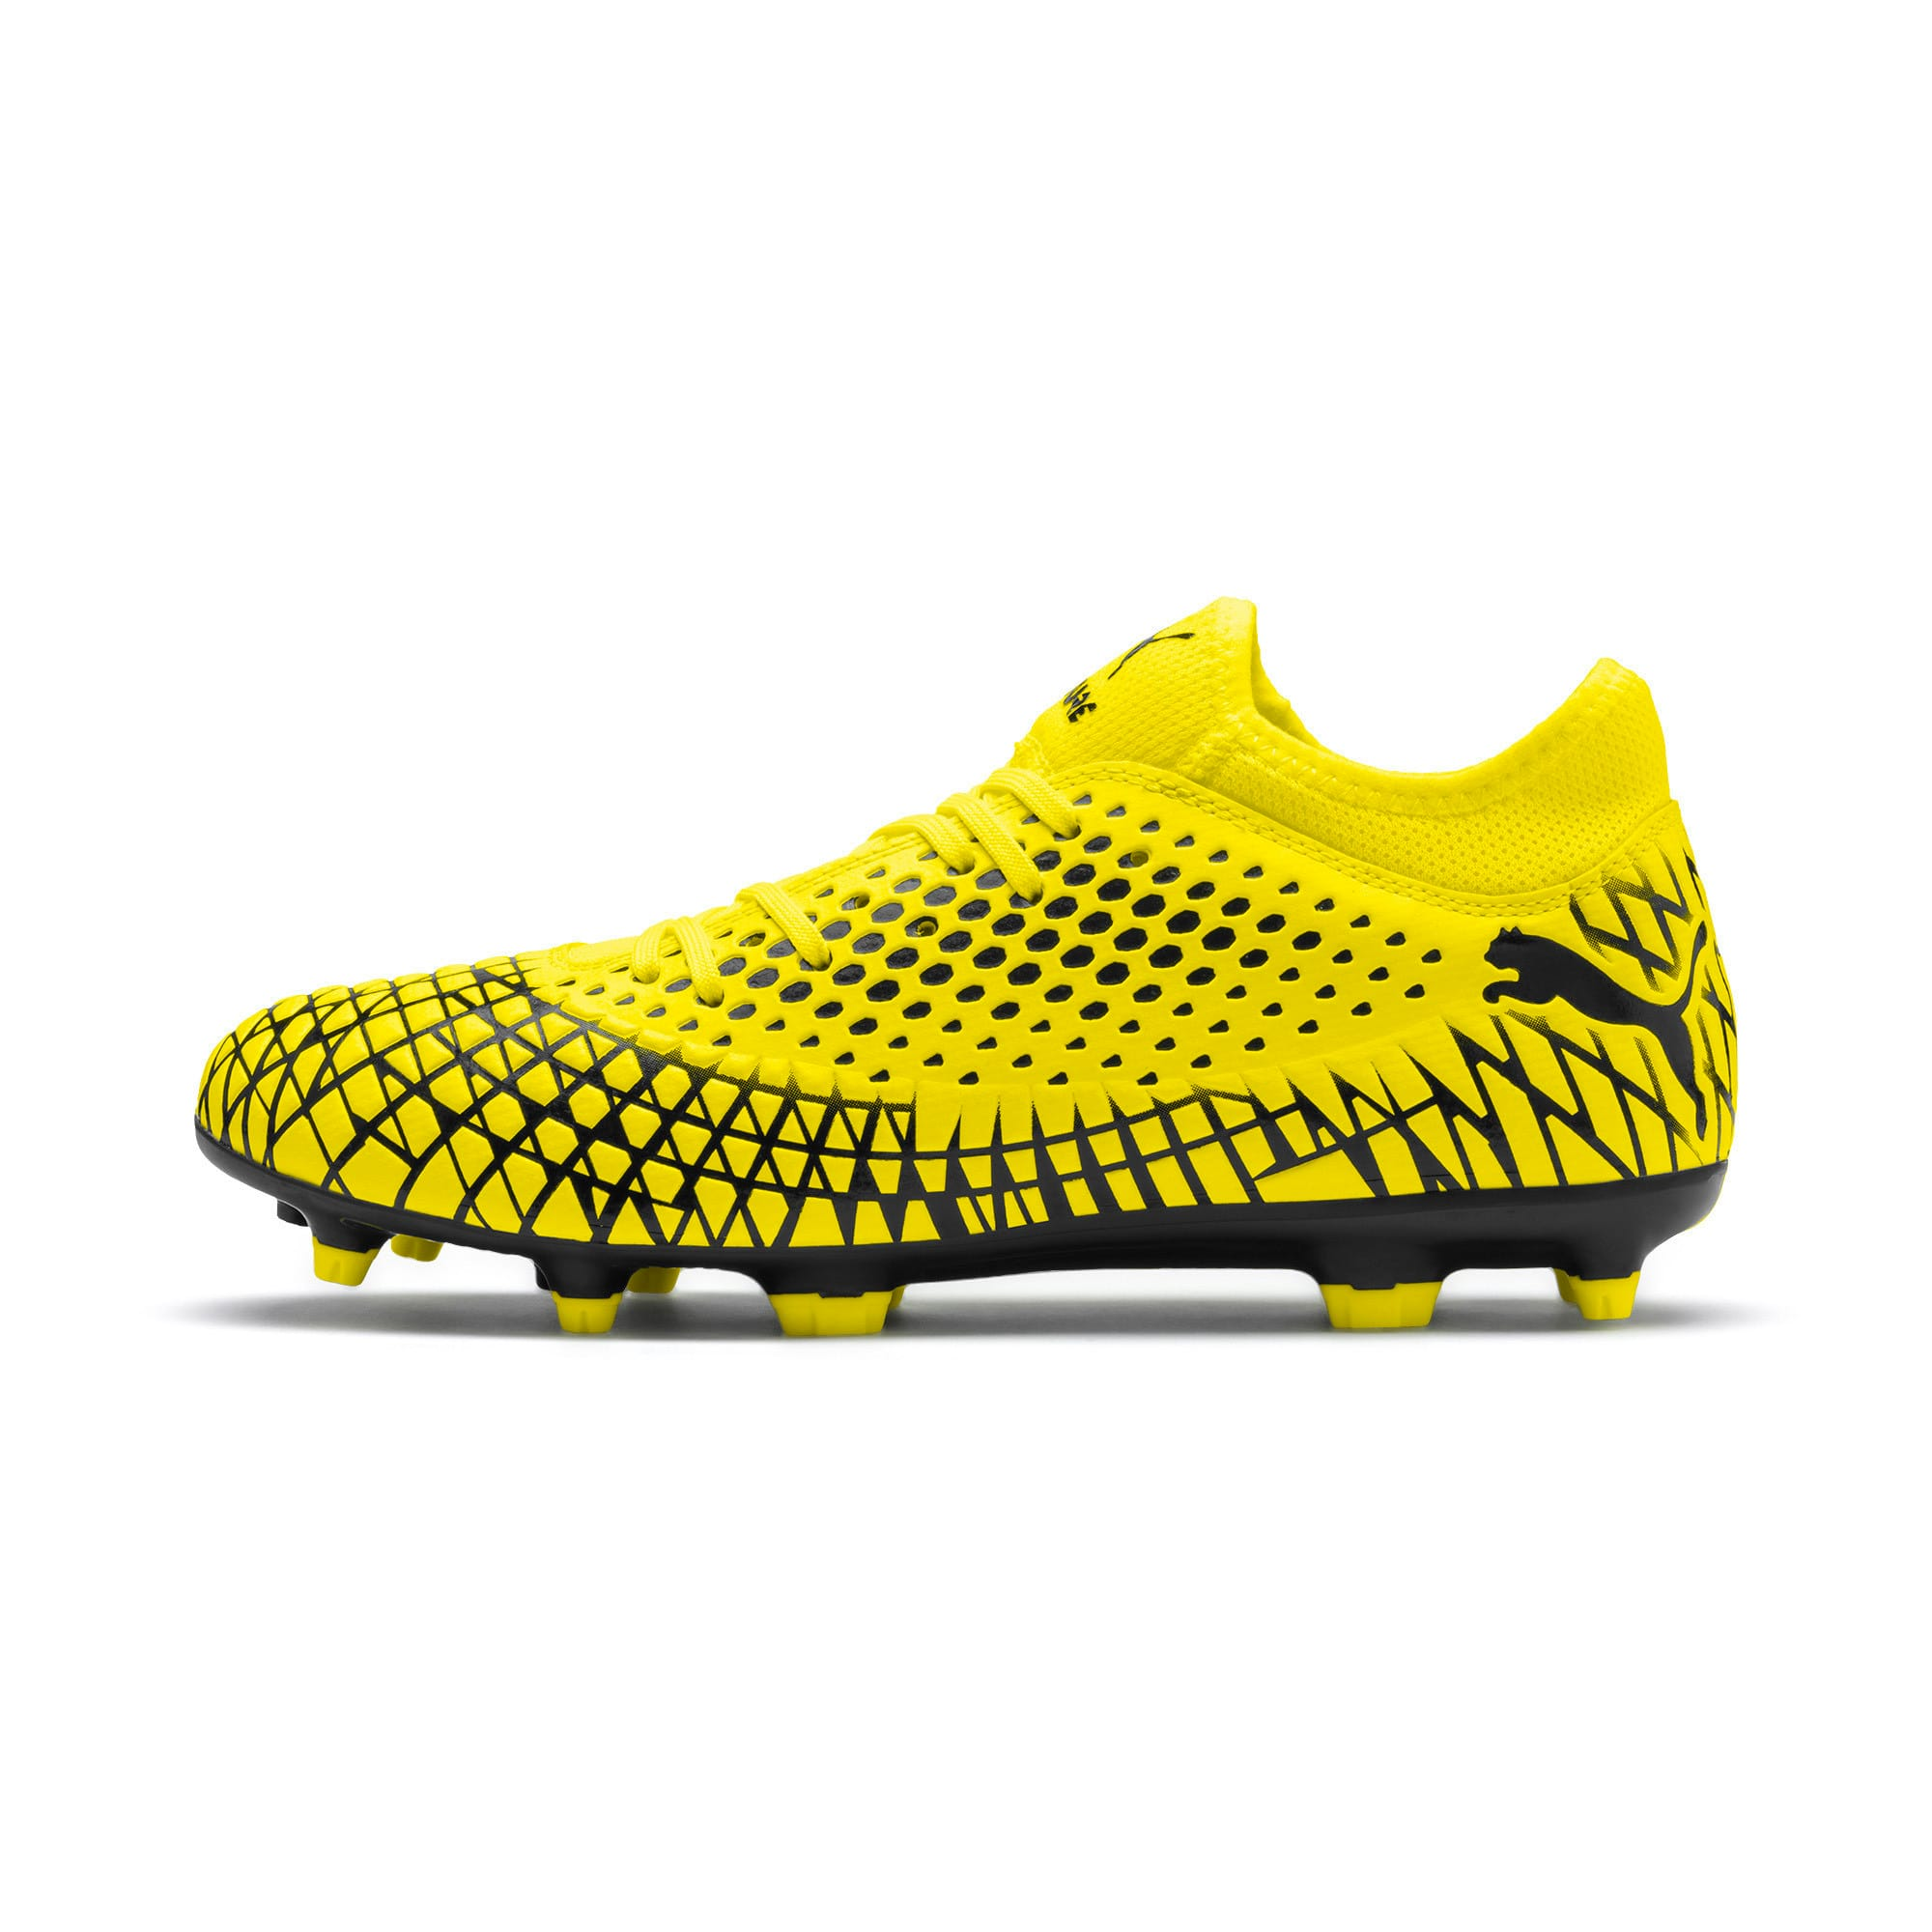 Thumbnail 1 of FUTURE 4.4 FG/AG Men's Football Boots, Yellow Alert-Puma Black, medium